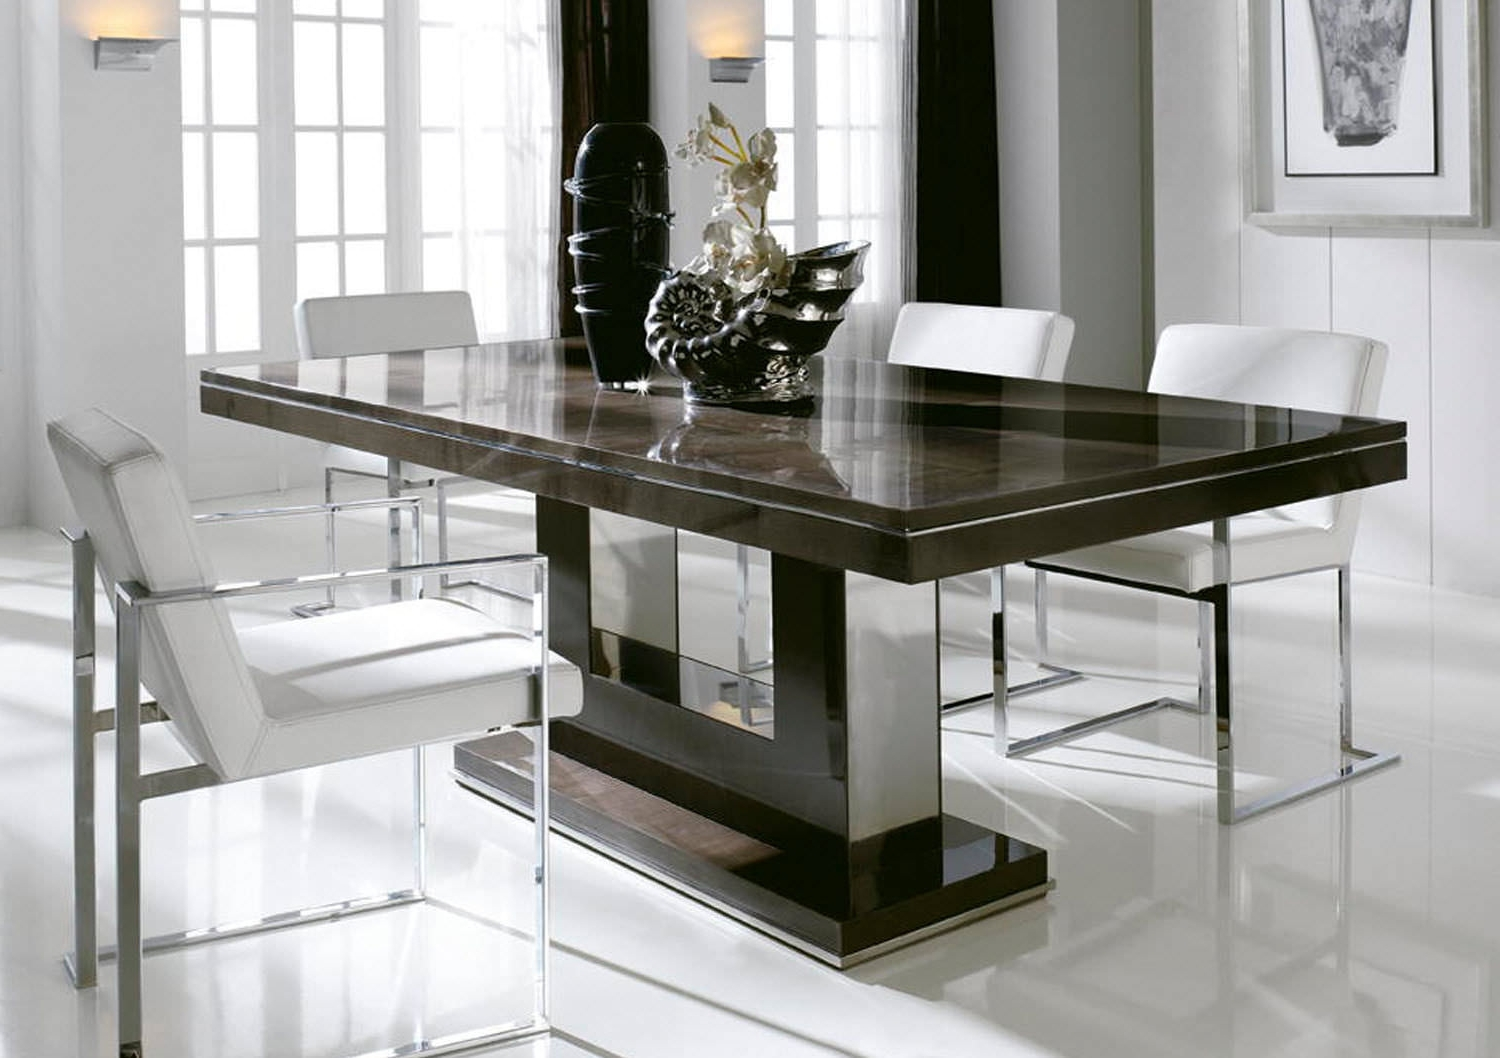 Most Recent Modern Dining Tables Within Contemporary Dining Tables – Decoration Channel (View 16 of 25)